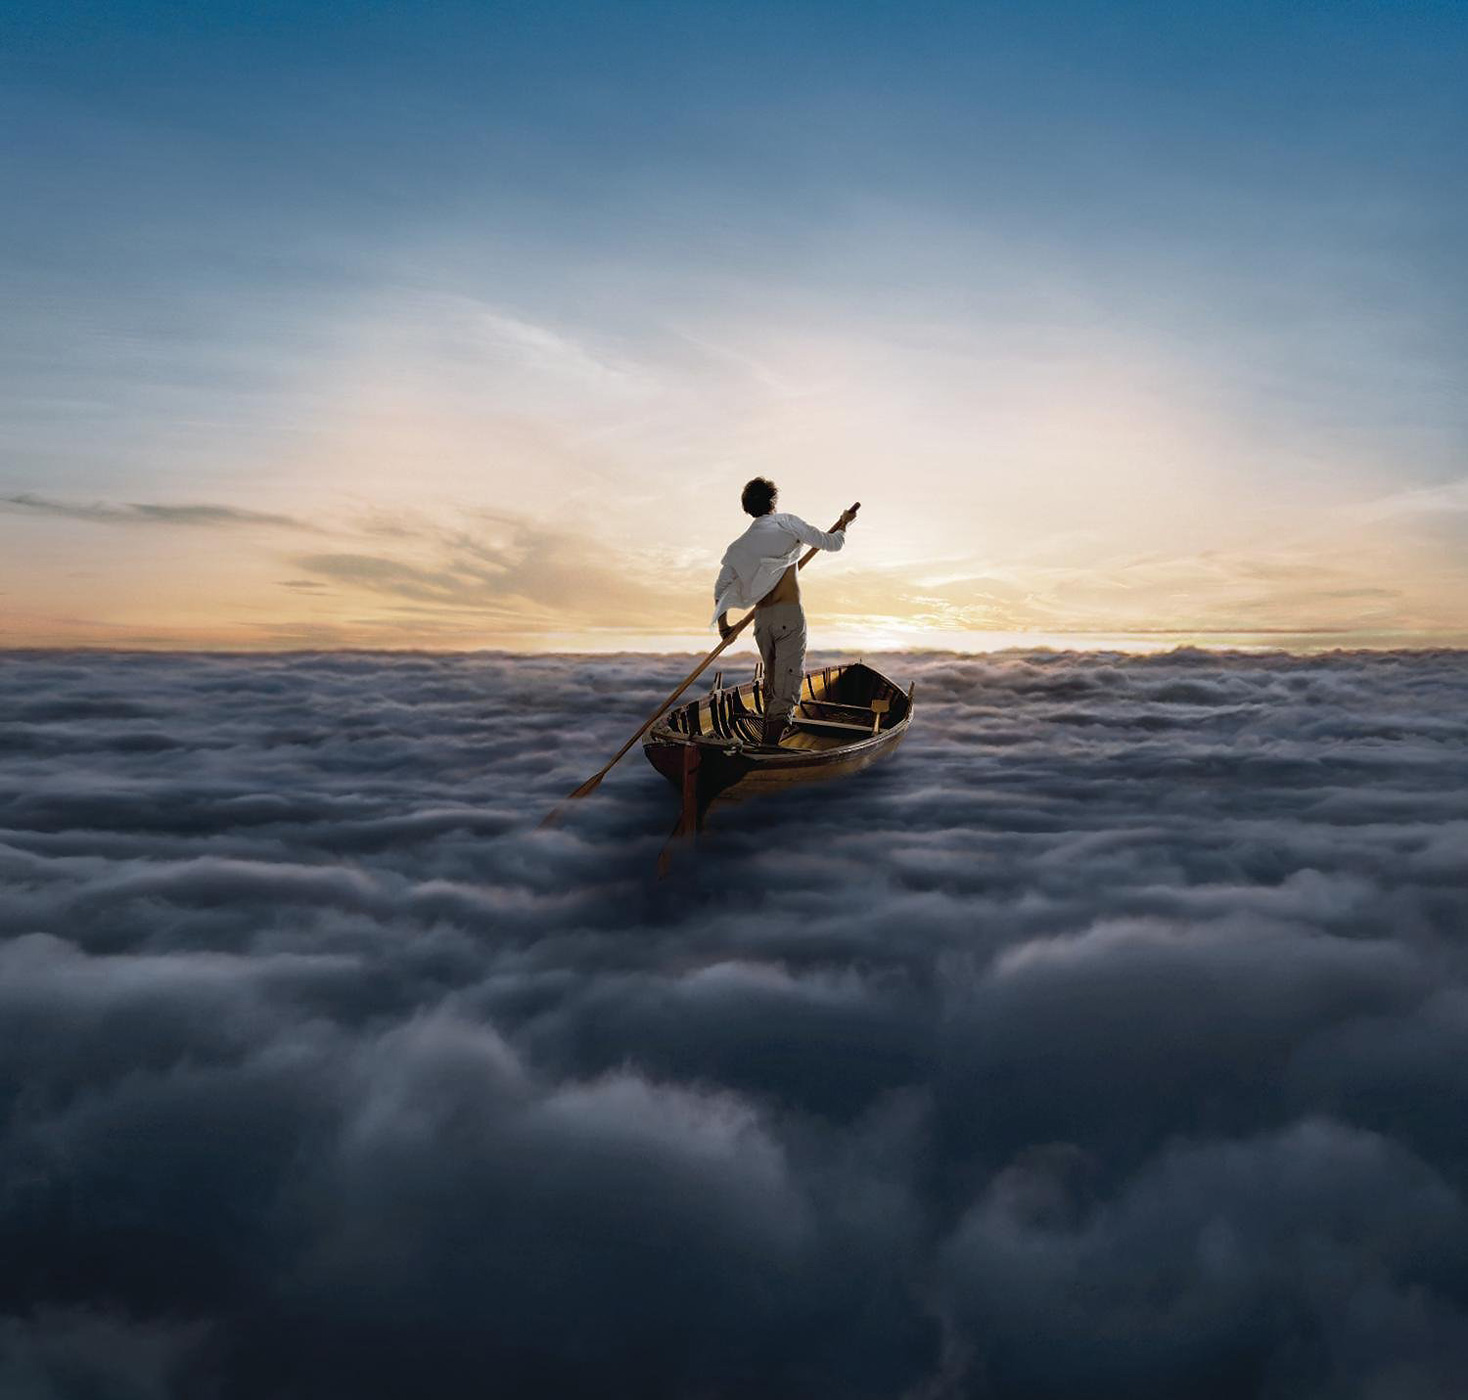 Album cover art for Pink Floyd's Endless River